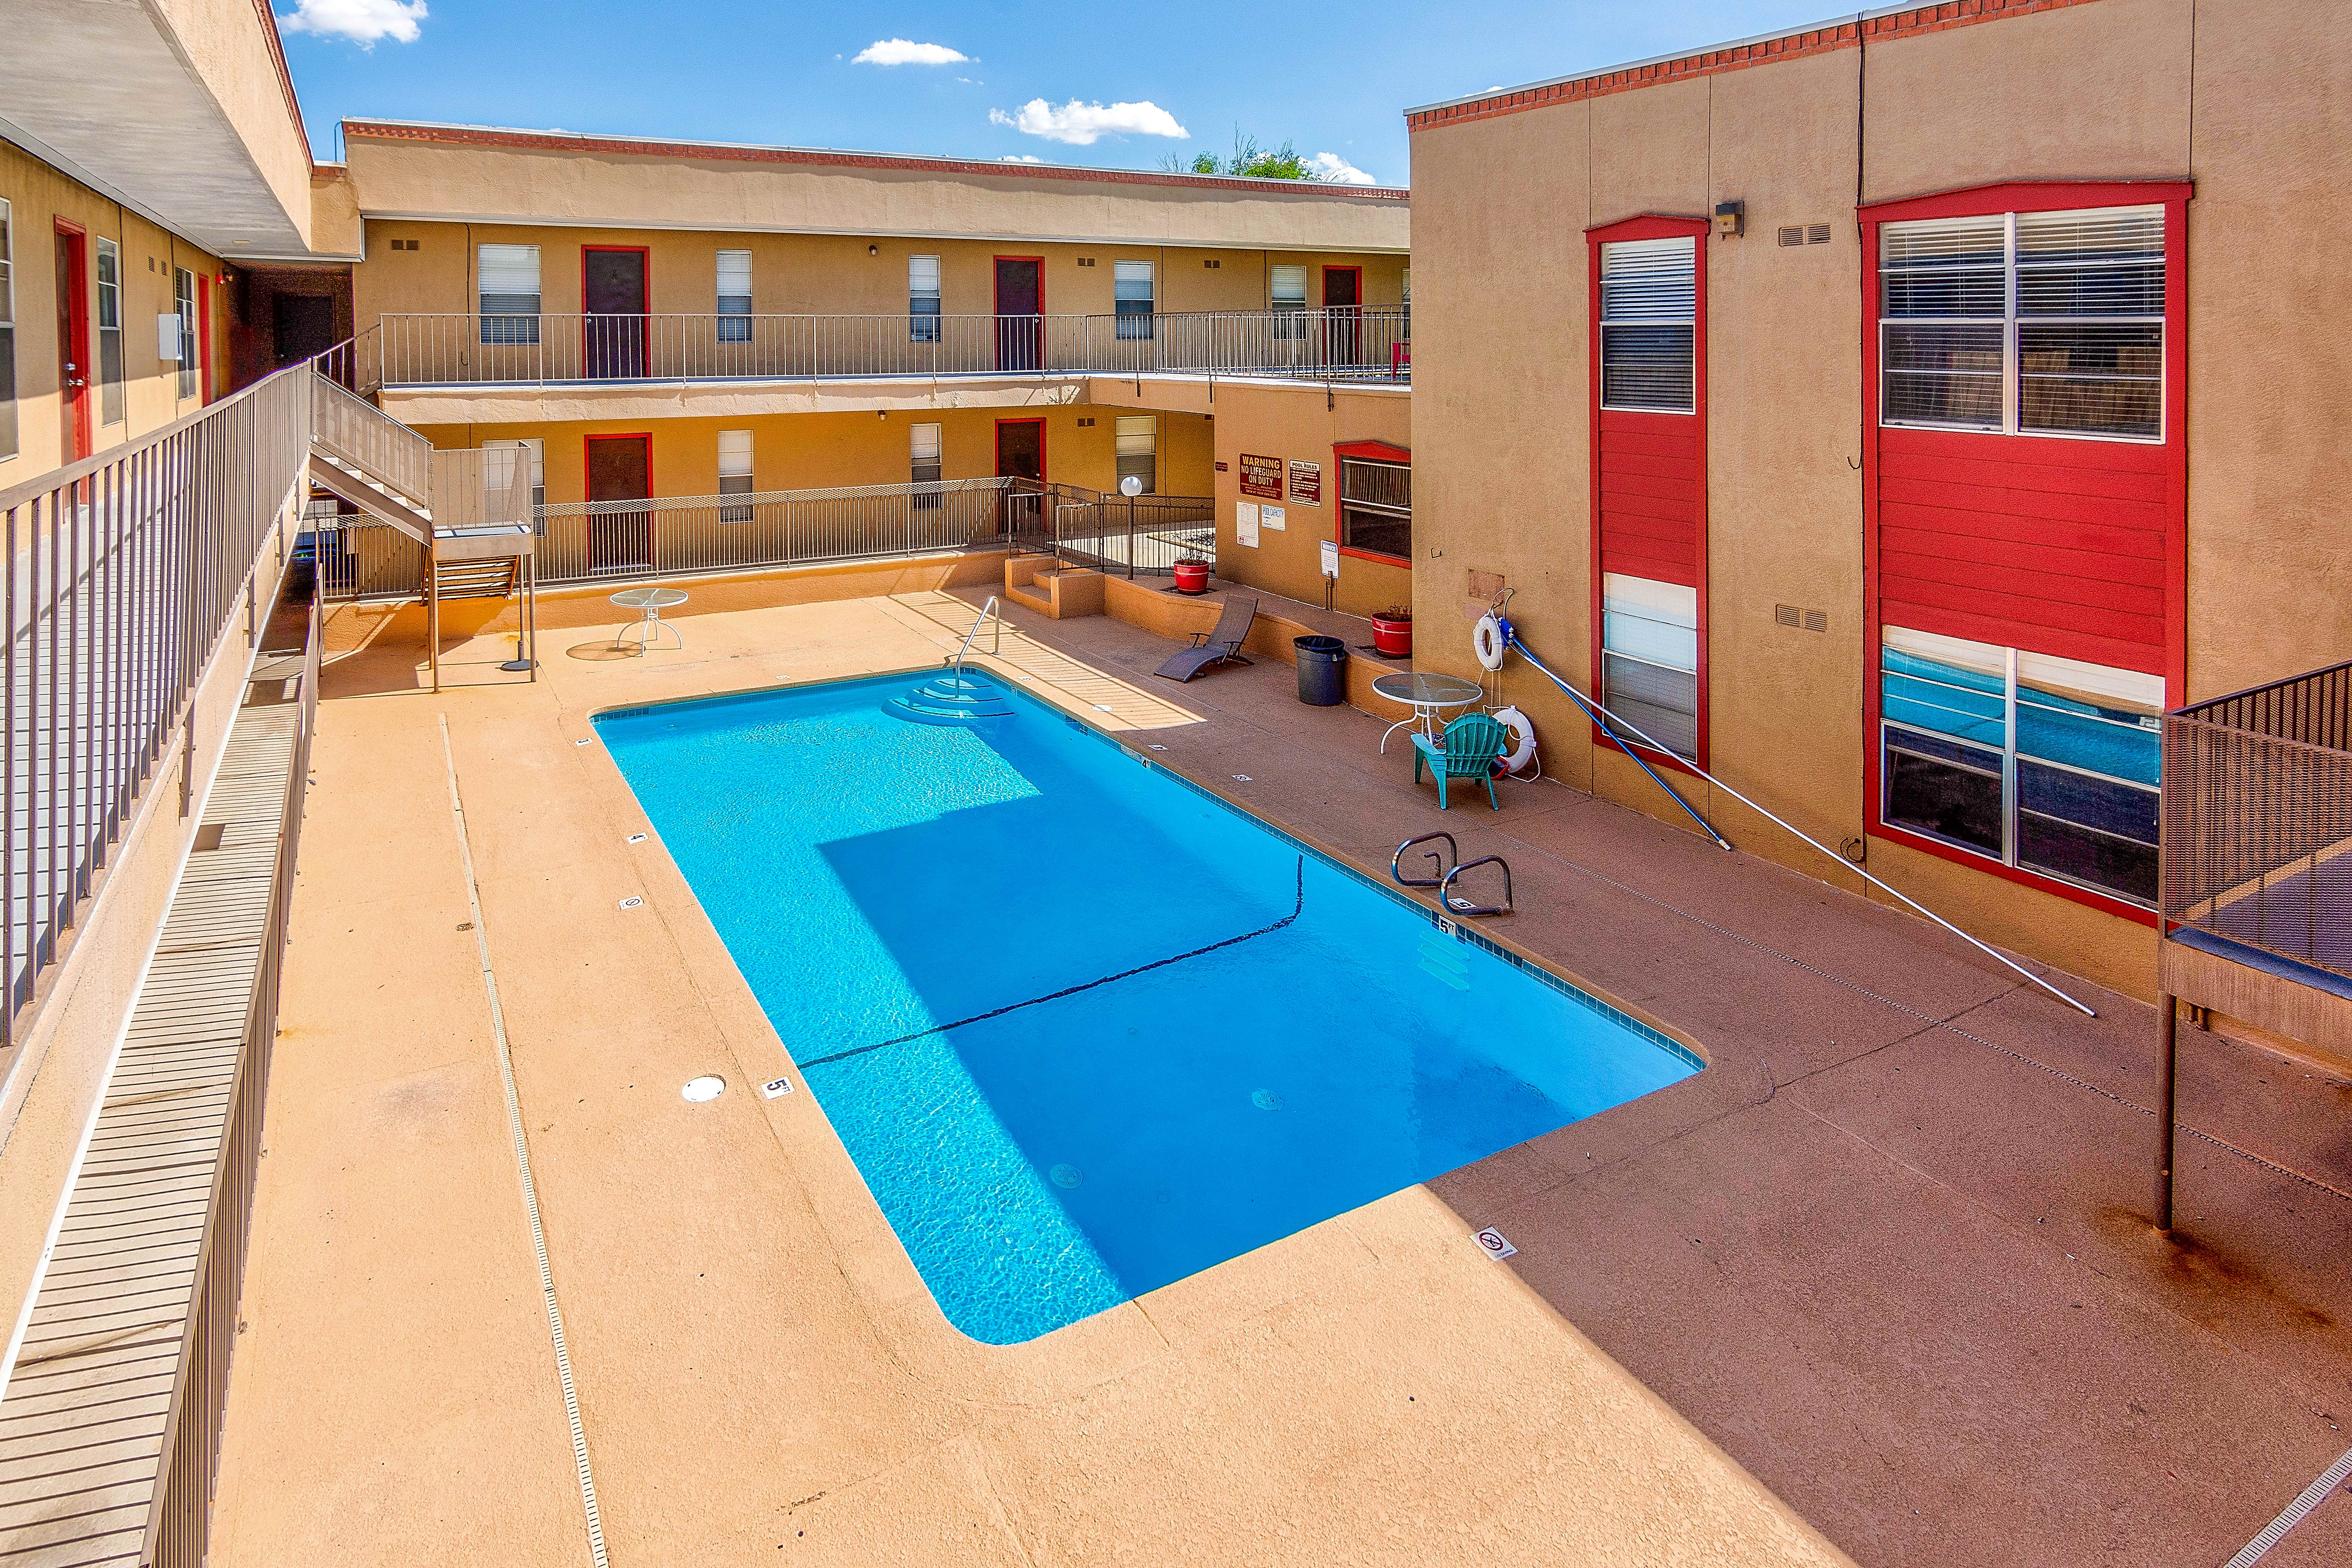 Apartments Near New Mexico The Cedars for University of New Mexico Students in Albuquerque, NM